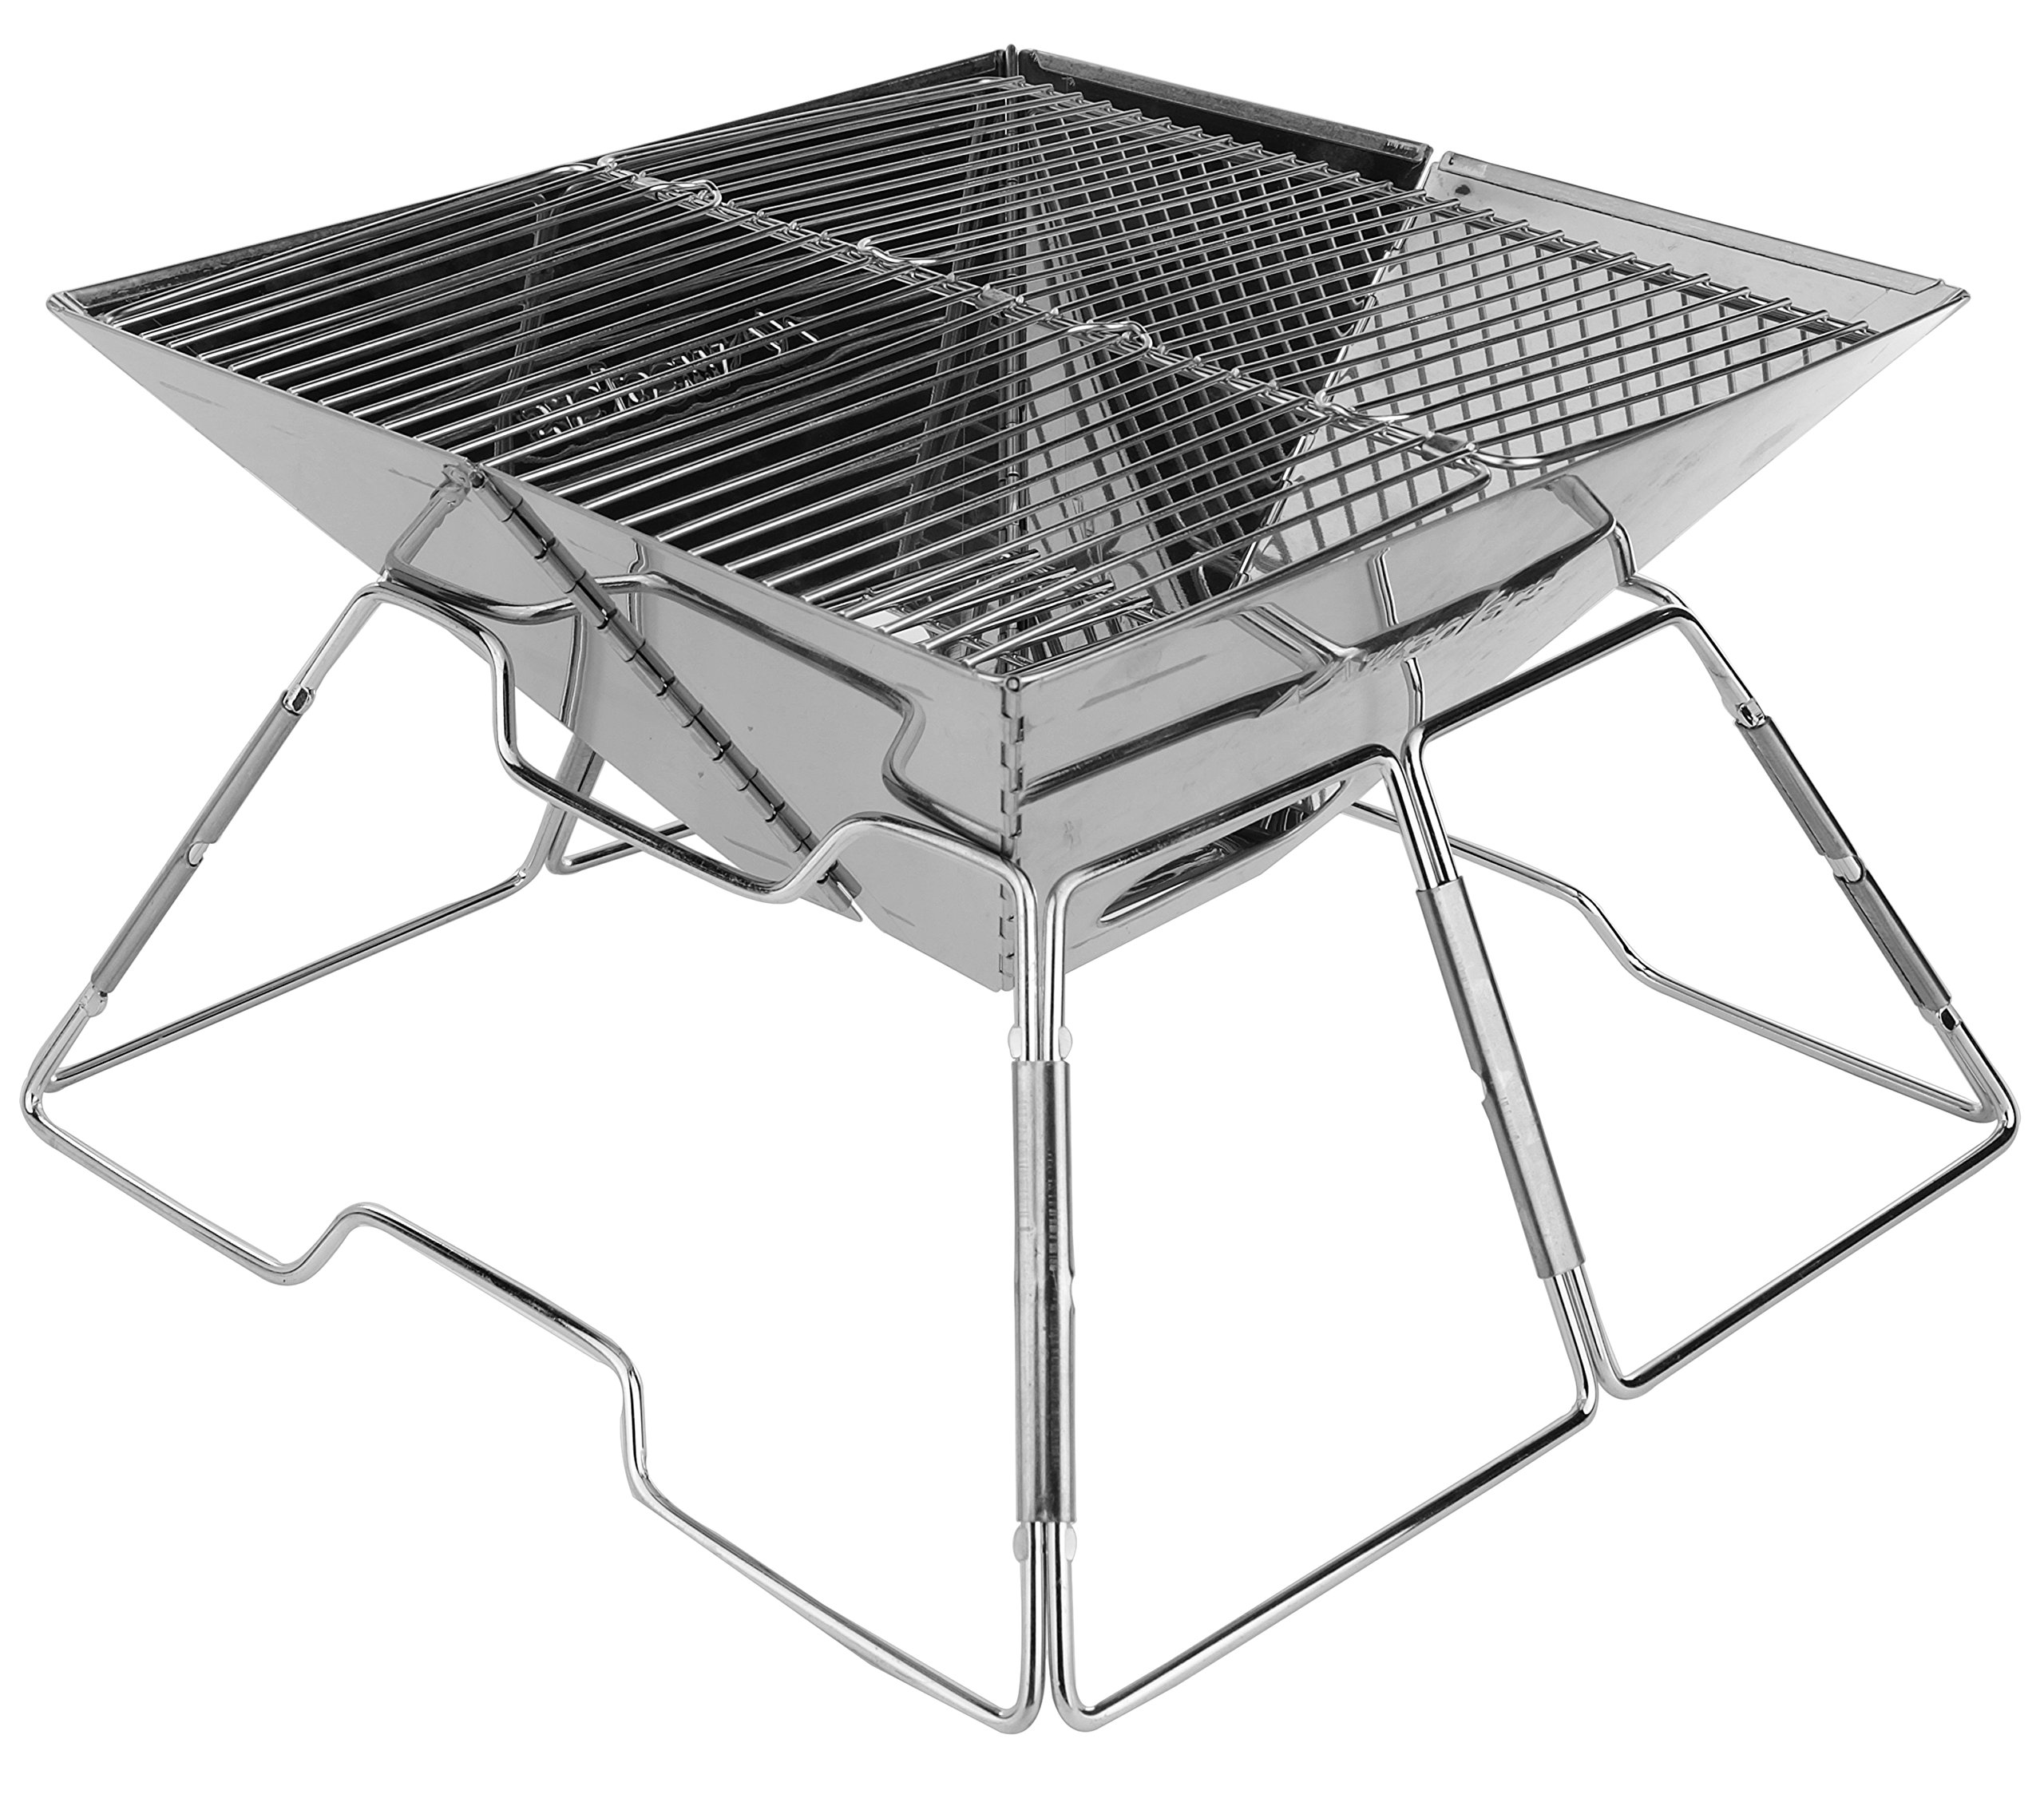 Wealers Compact Folding 12 Inch Charcoal BBQ Grill Made From Stainless Steel. Portable and Great for Camping, Picnics, Backpacking, Backyards, Survival, Emergency Preparation.